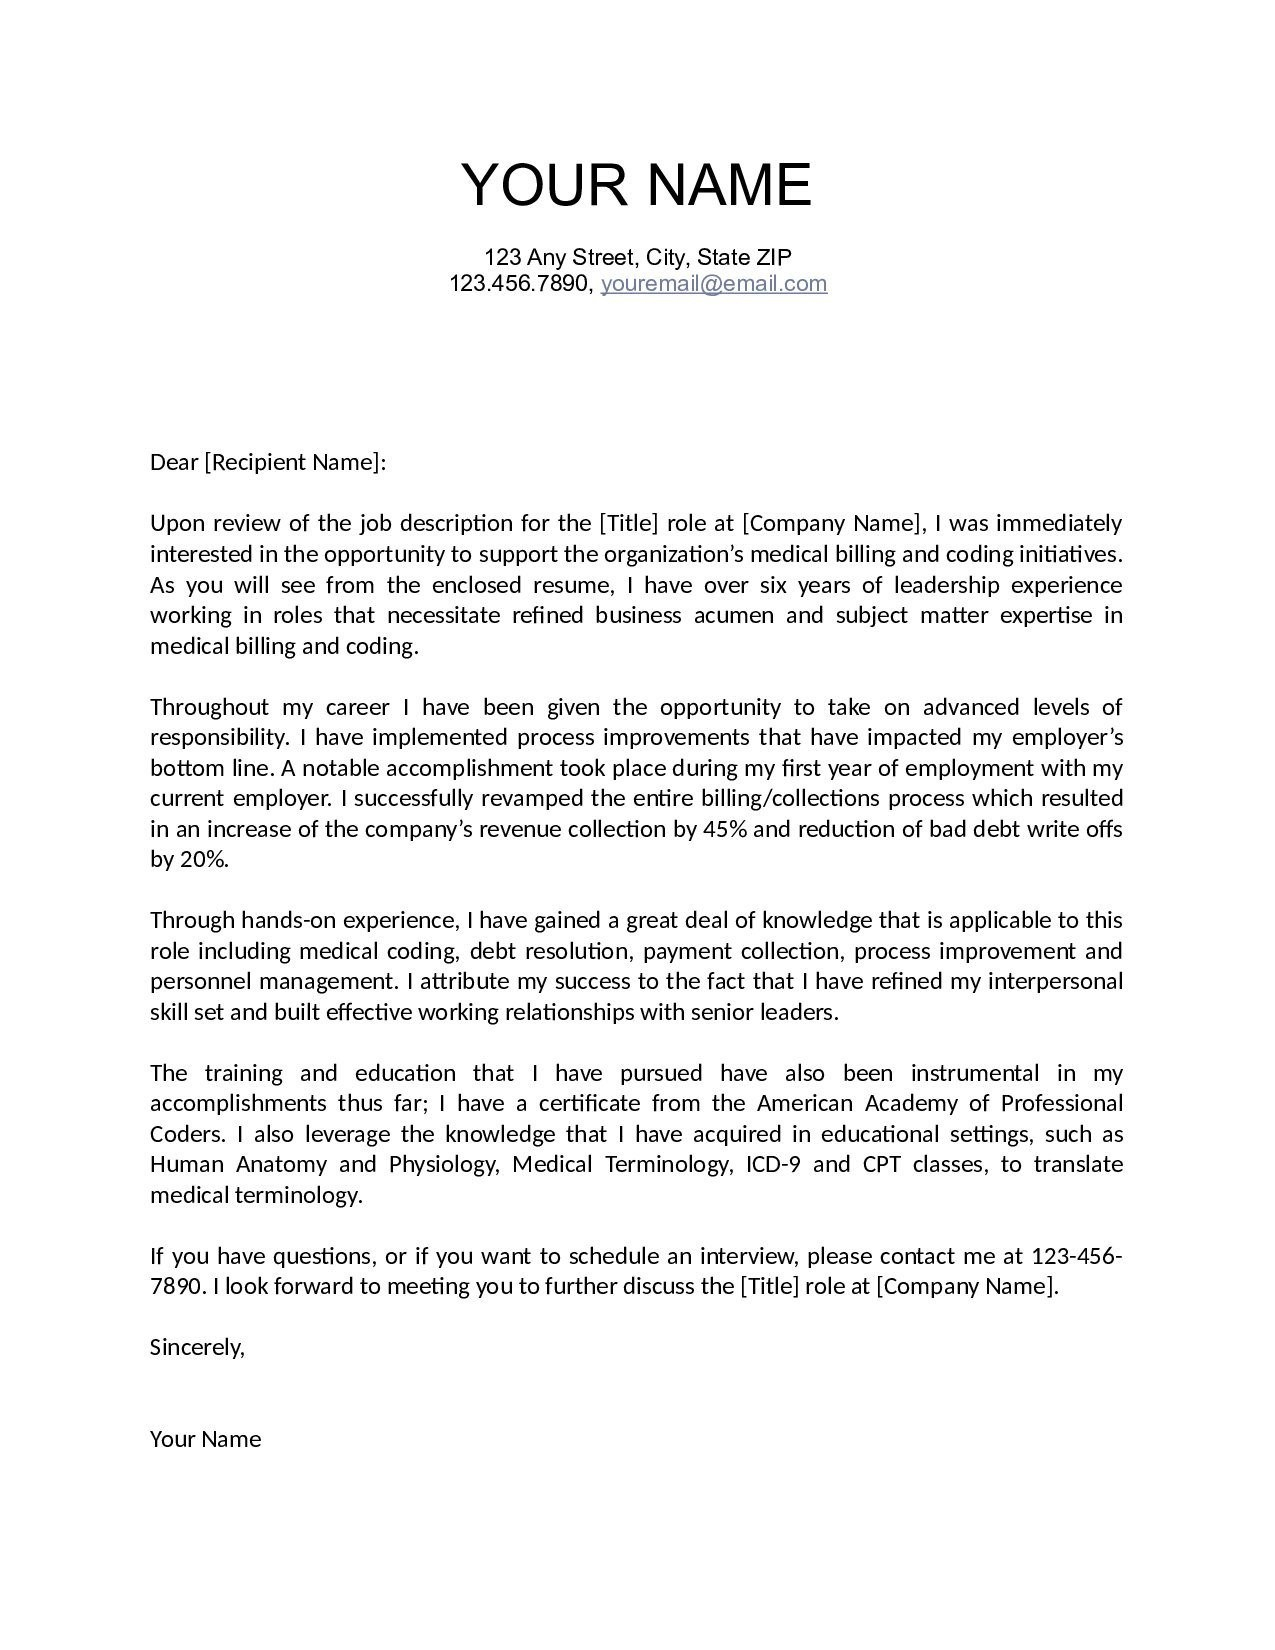 Past Due Collection Letter Template - Past Due Letter Template Unique Job Take Over Letter Best Cover